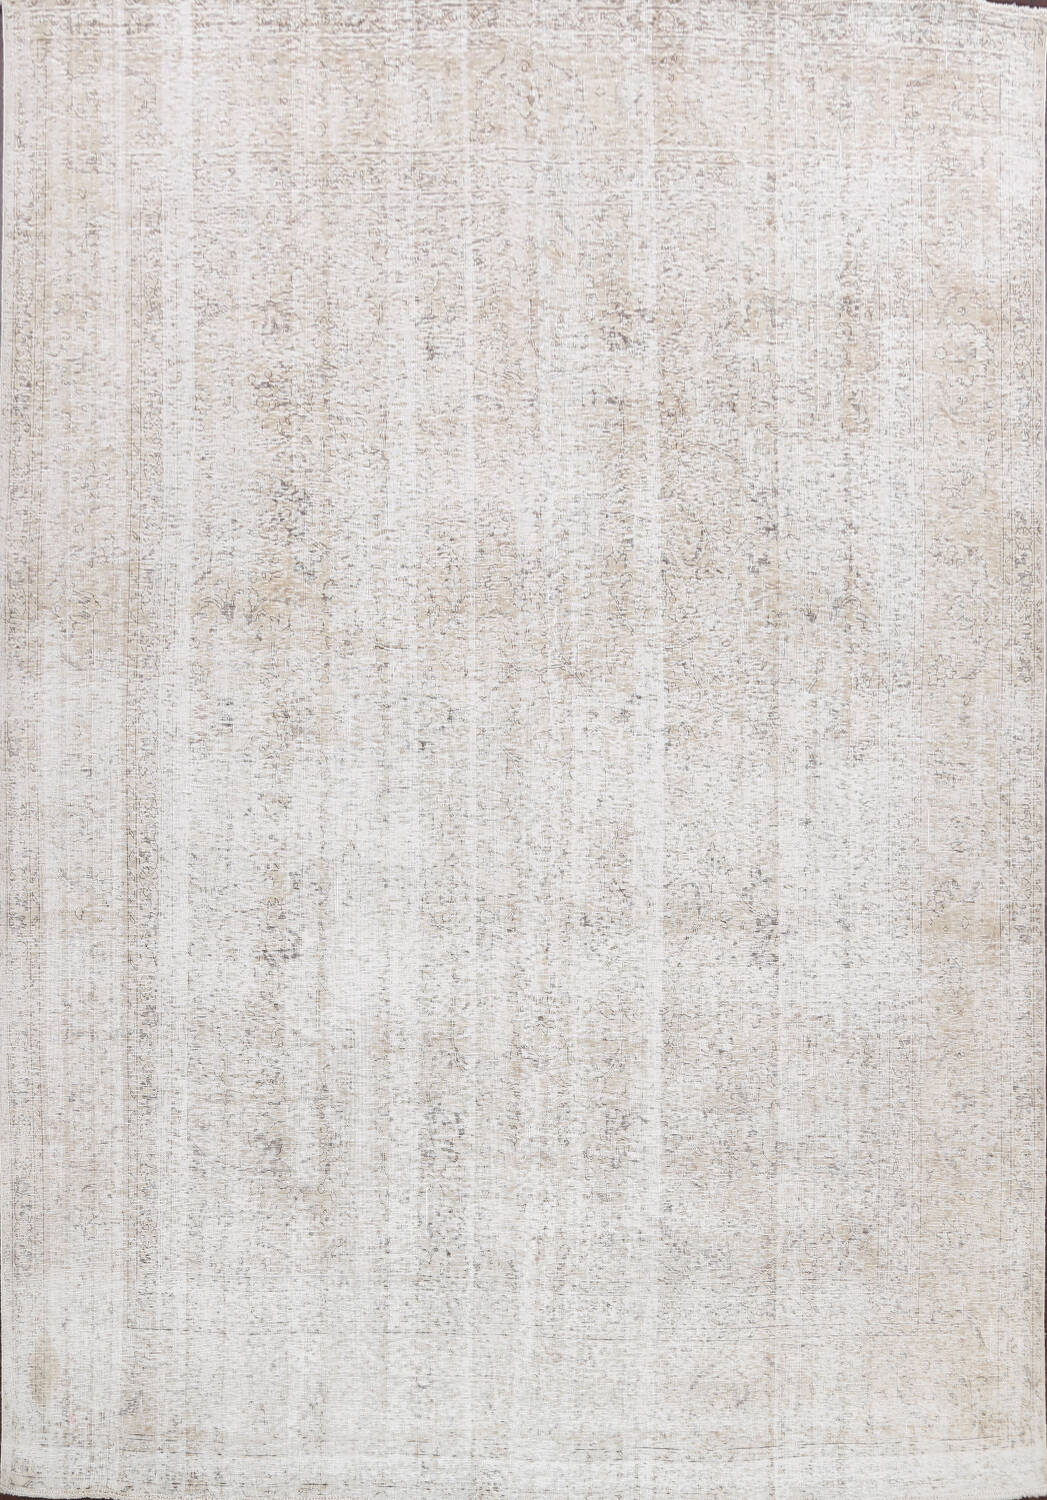 Antique Muted Vintage Distressed Oriental Area Rug 10x11 image 1